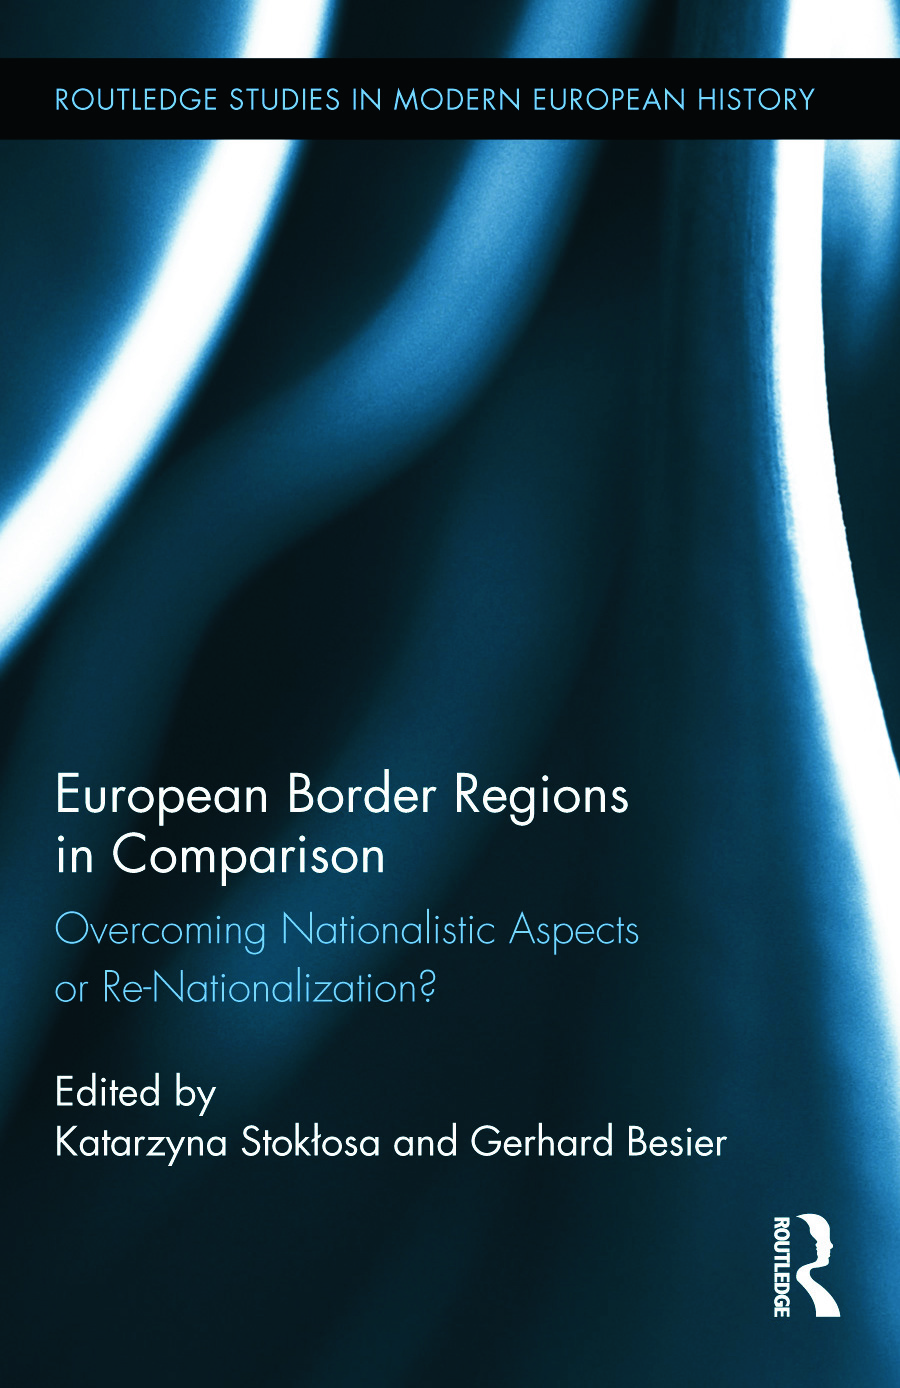 European Border Regions in Comparison: Overcoming Nationalistic Aspects or Re-Nationalization? book cover